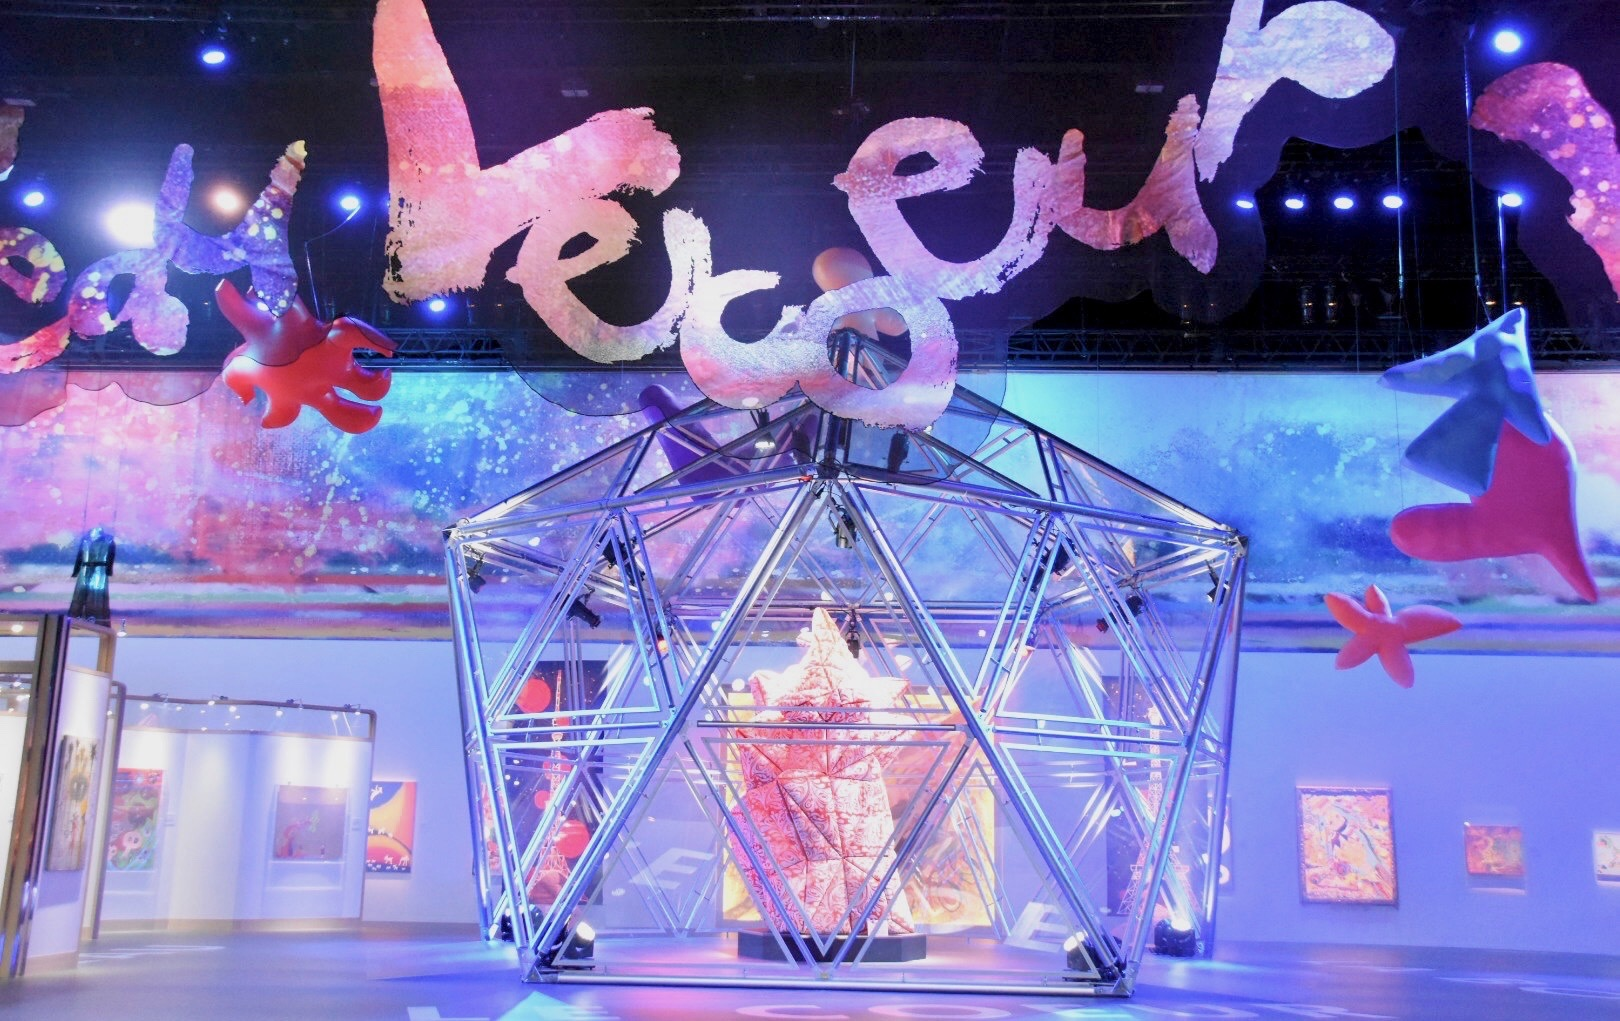 Stage A 「心臓」ドーム 展示風景